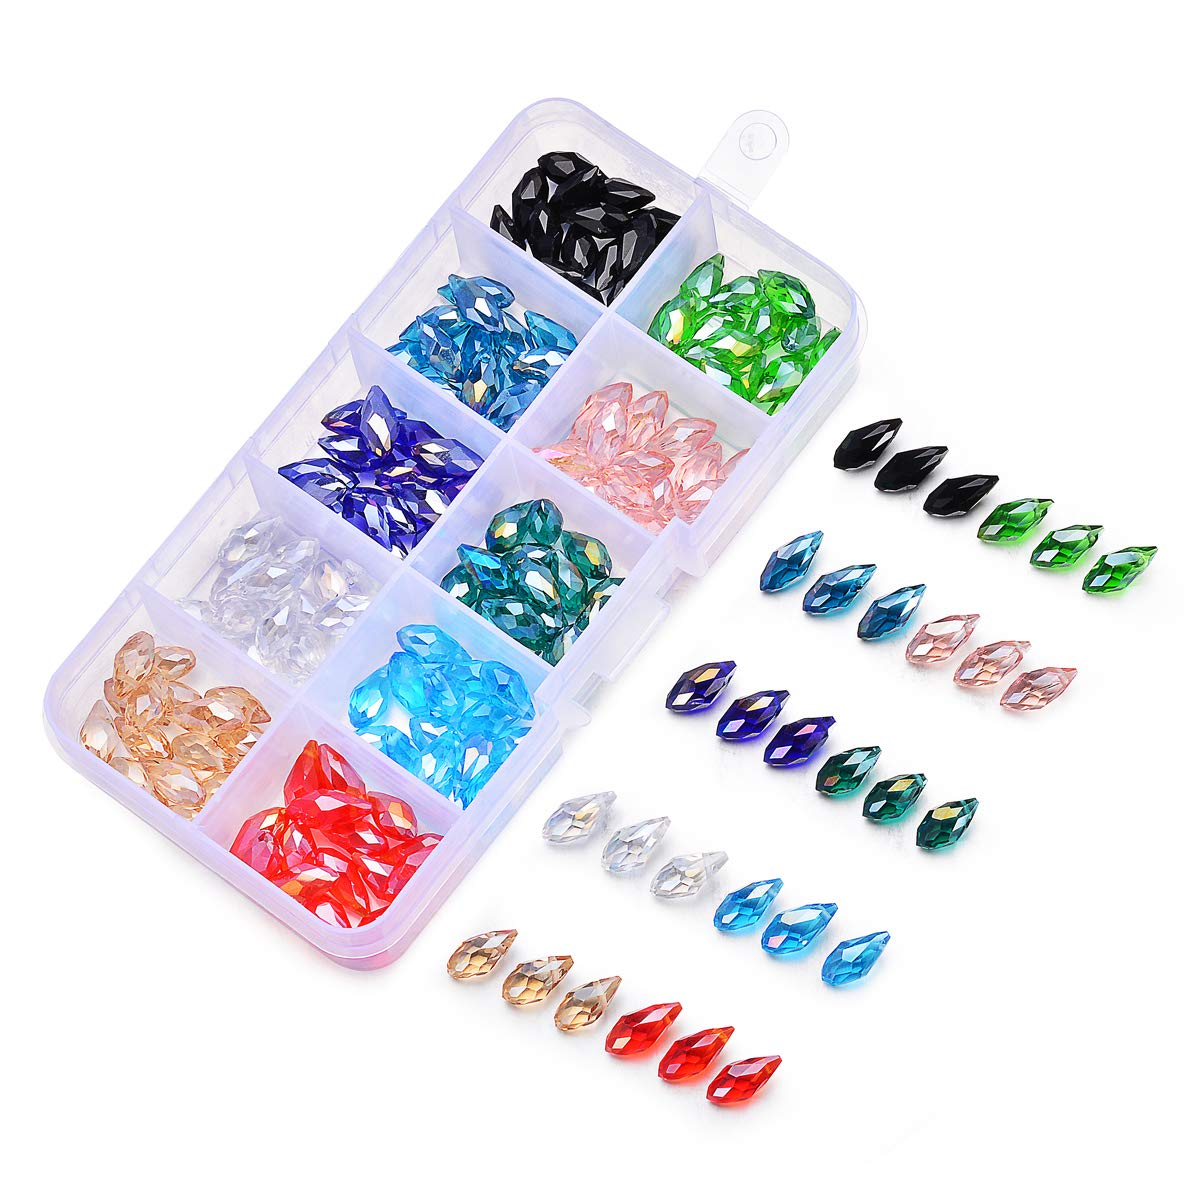 SROMAY 150pcs 6x12mm Teardrop Glass Crystal Beads, Briollete Top Drilled Shape Assorted AB Color Faceted Beads Pendants for Jewelry Making with Container Box